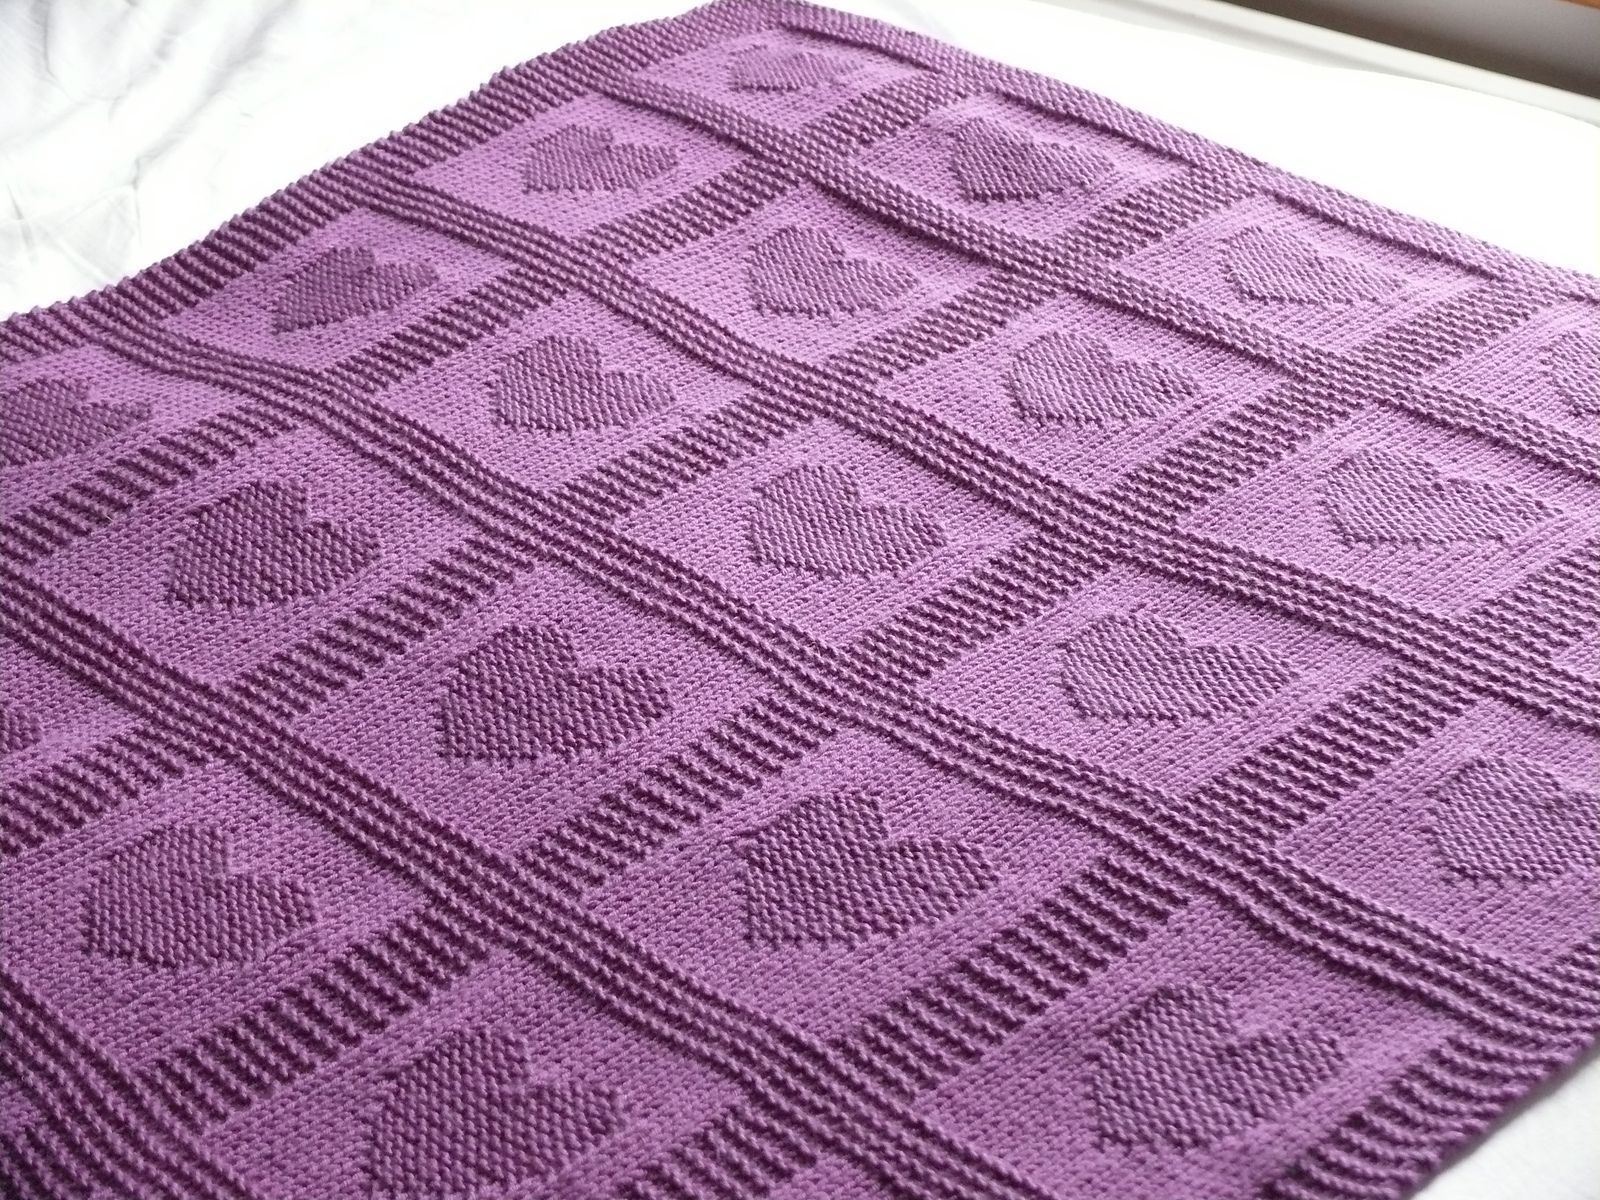 Free Knitting Patterns For Baby Blankets Heart Ba Blanket Ann Saglimbene Free Knitted Pattern Knitting